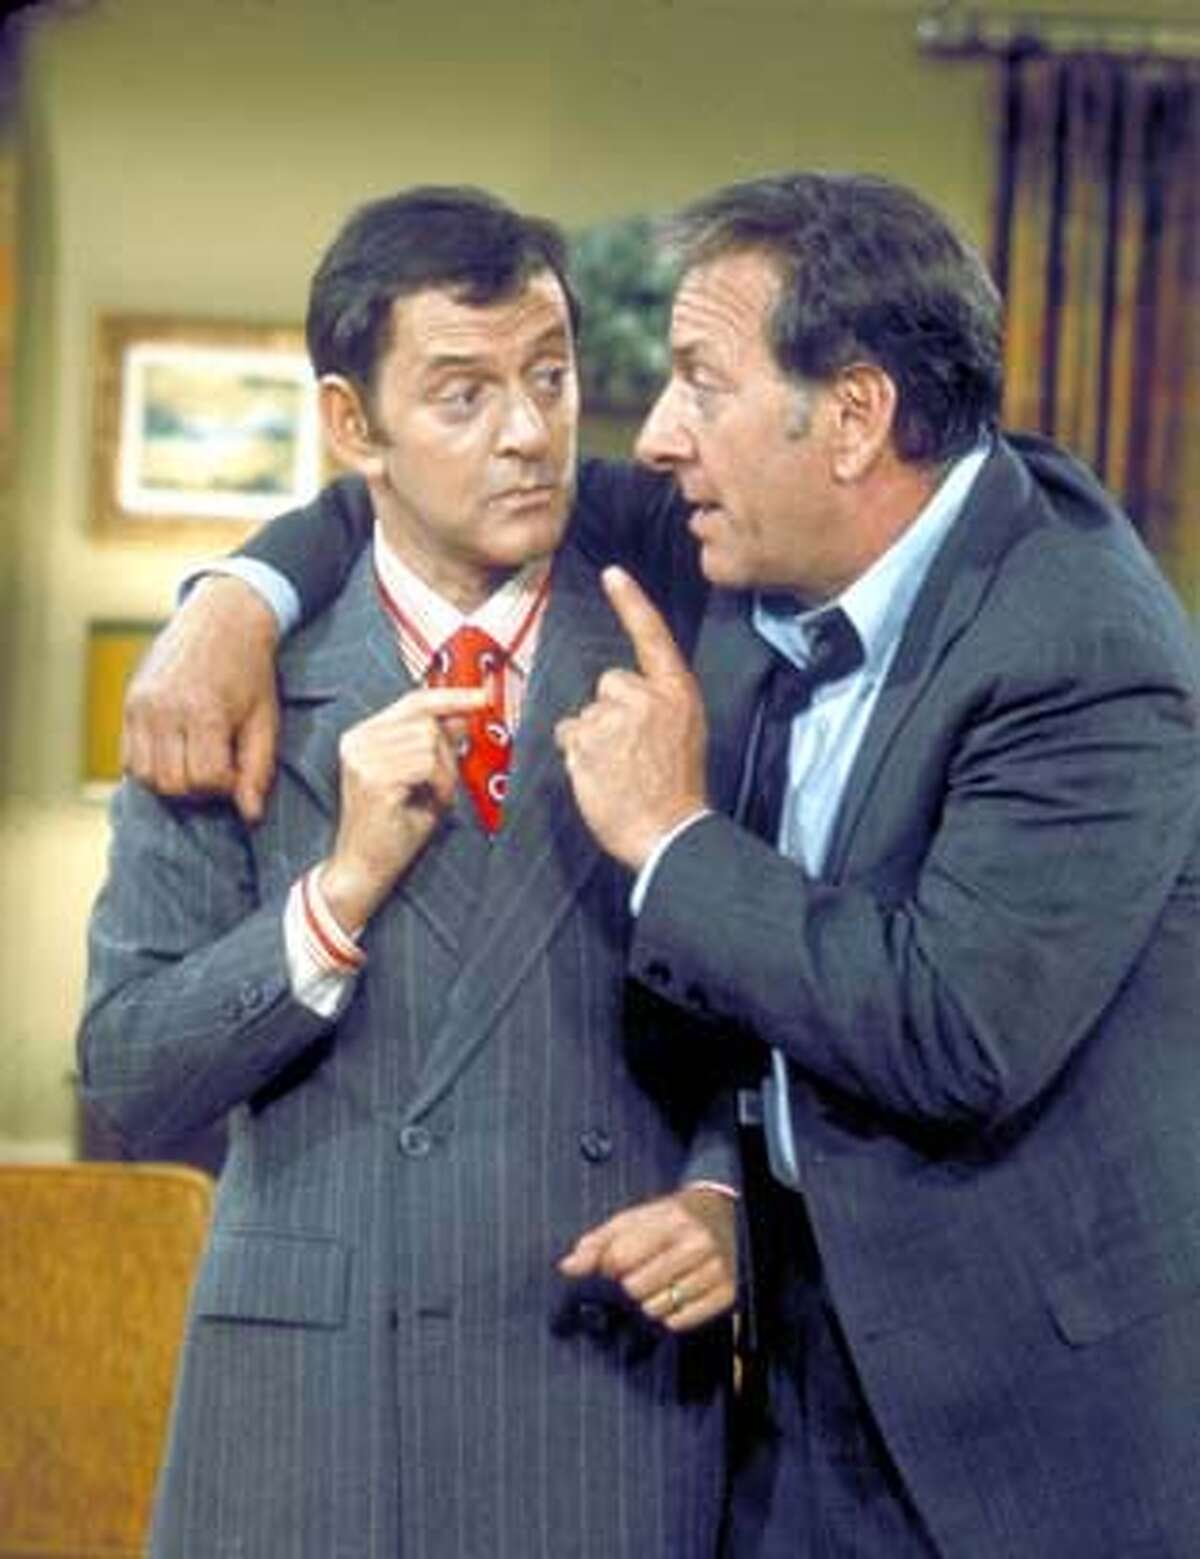 """Tony Randall (left) and Jack Klugman co-starred in the ABC comedy television series """"The Odd Couple"""" in the 1970s."""